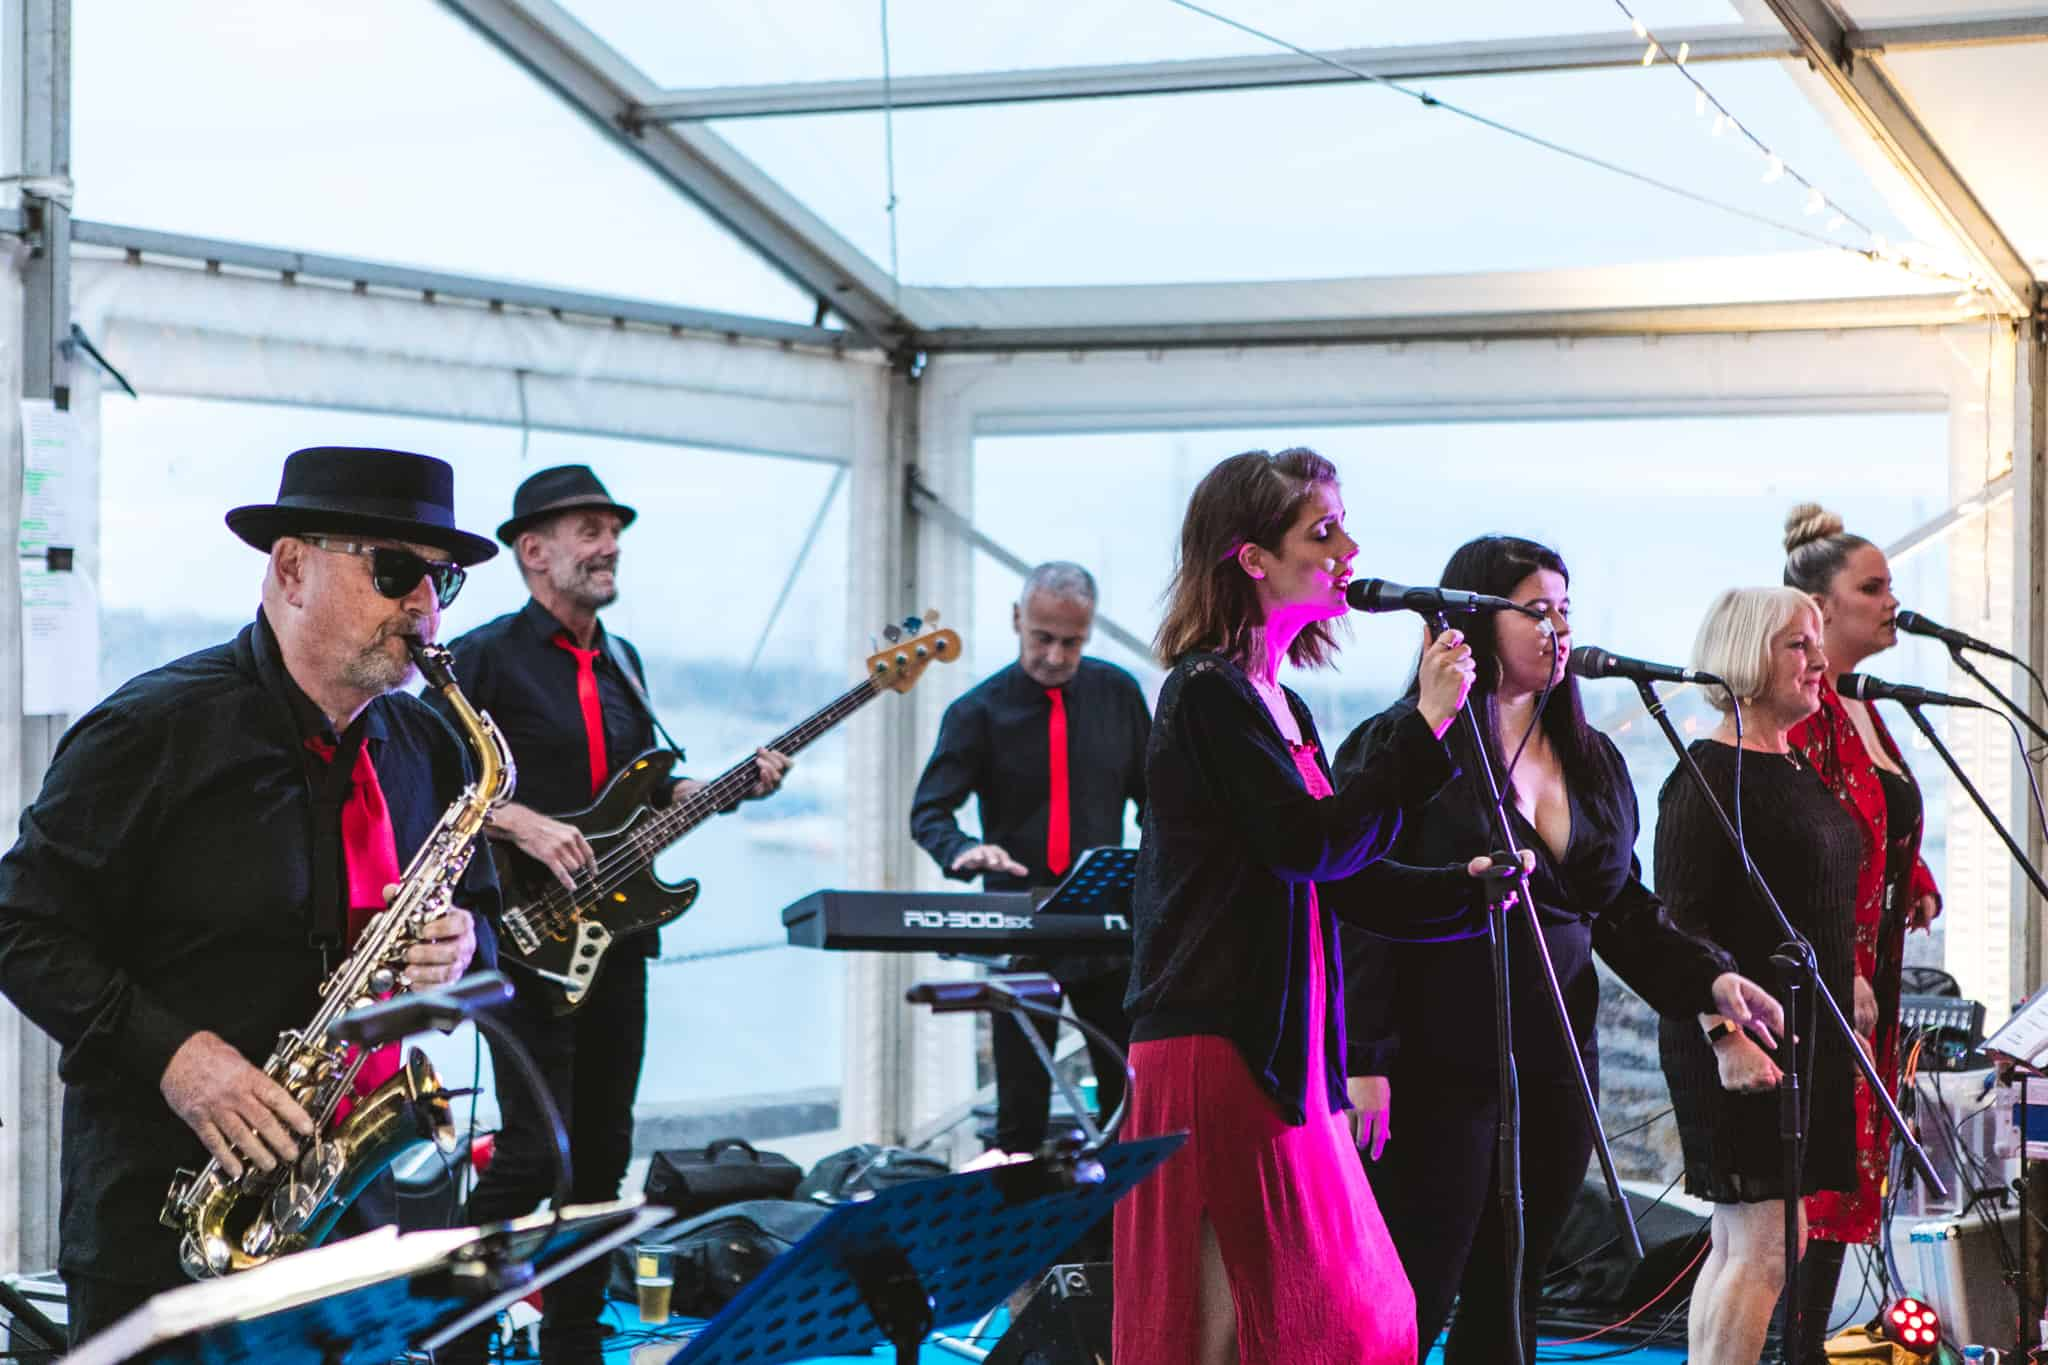 falmouth-week-at-the-working-boat-pub-live-music-events-falmouth-cornwall (34 of 114)